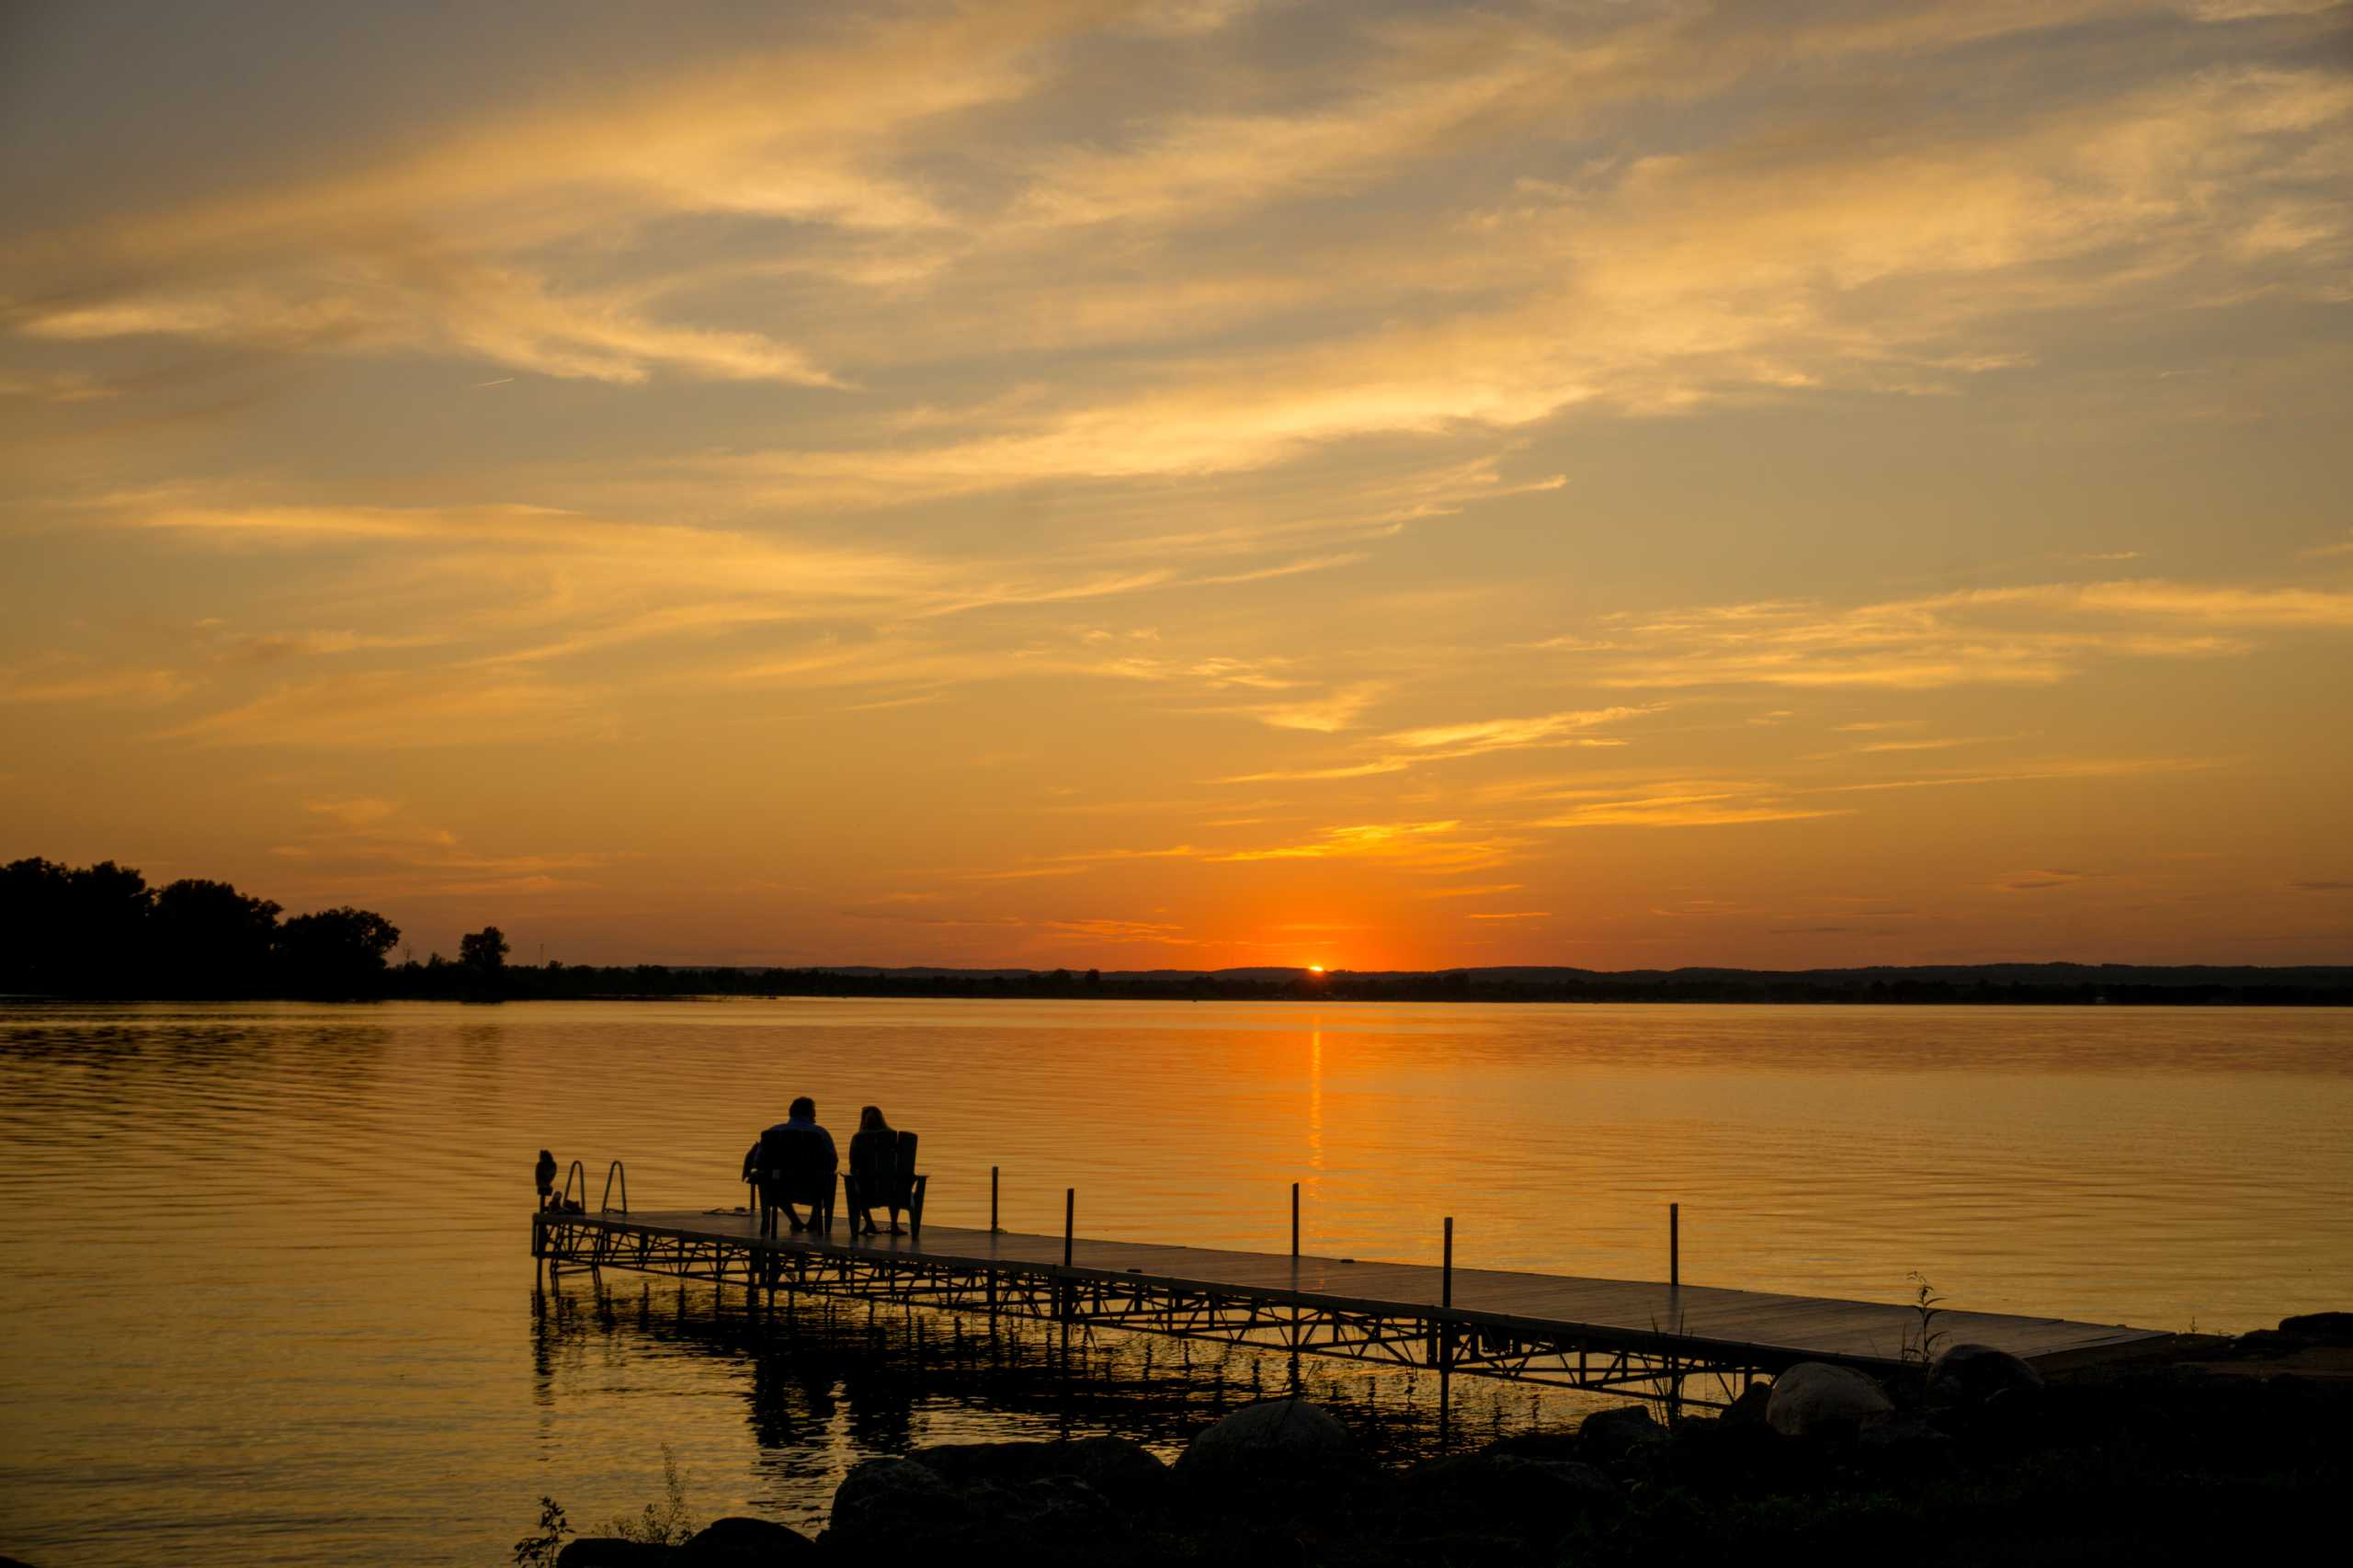 Man and woman sitting on a dock watching the sun set over Wellers Bay at The Empty Nest in Prince Edward County